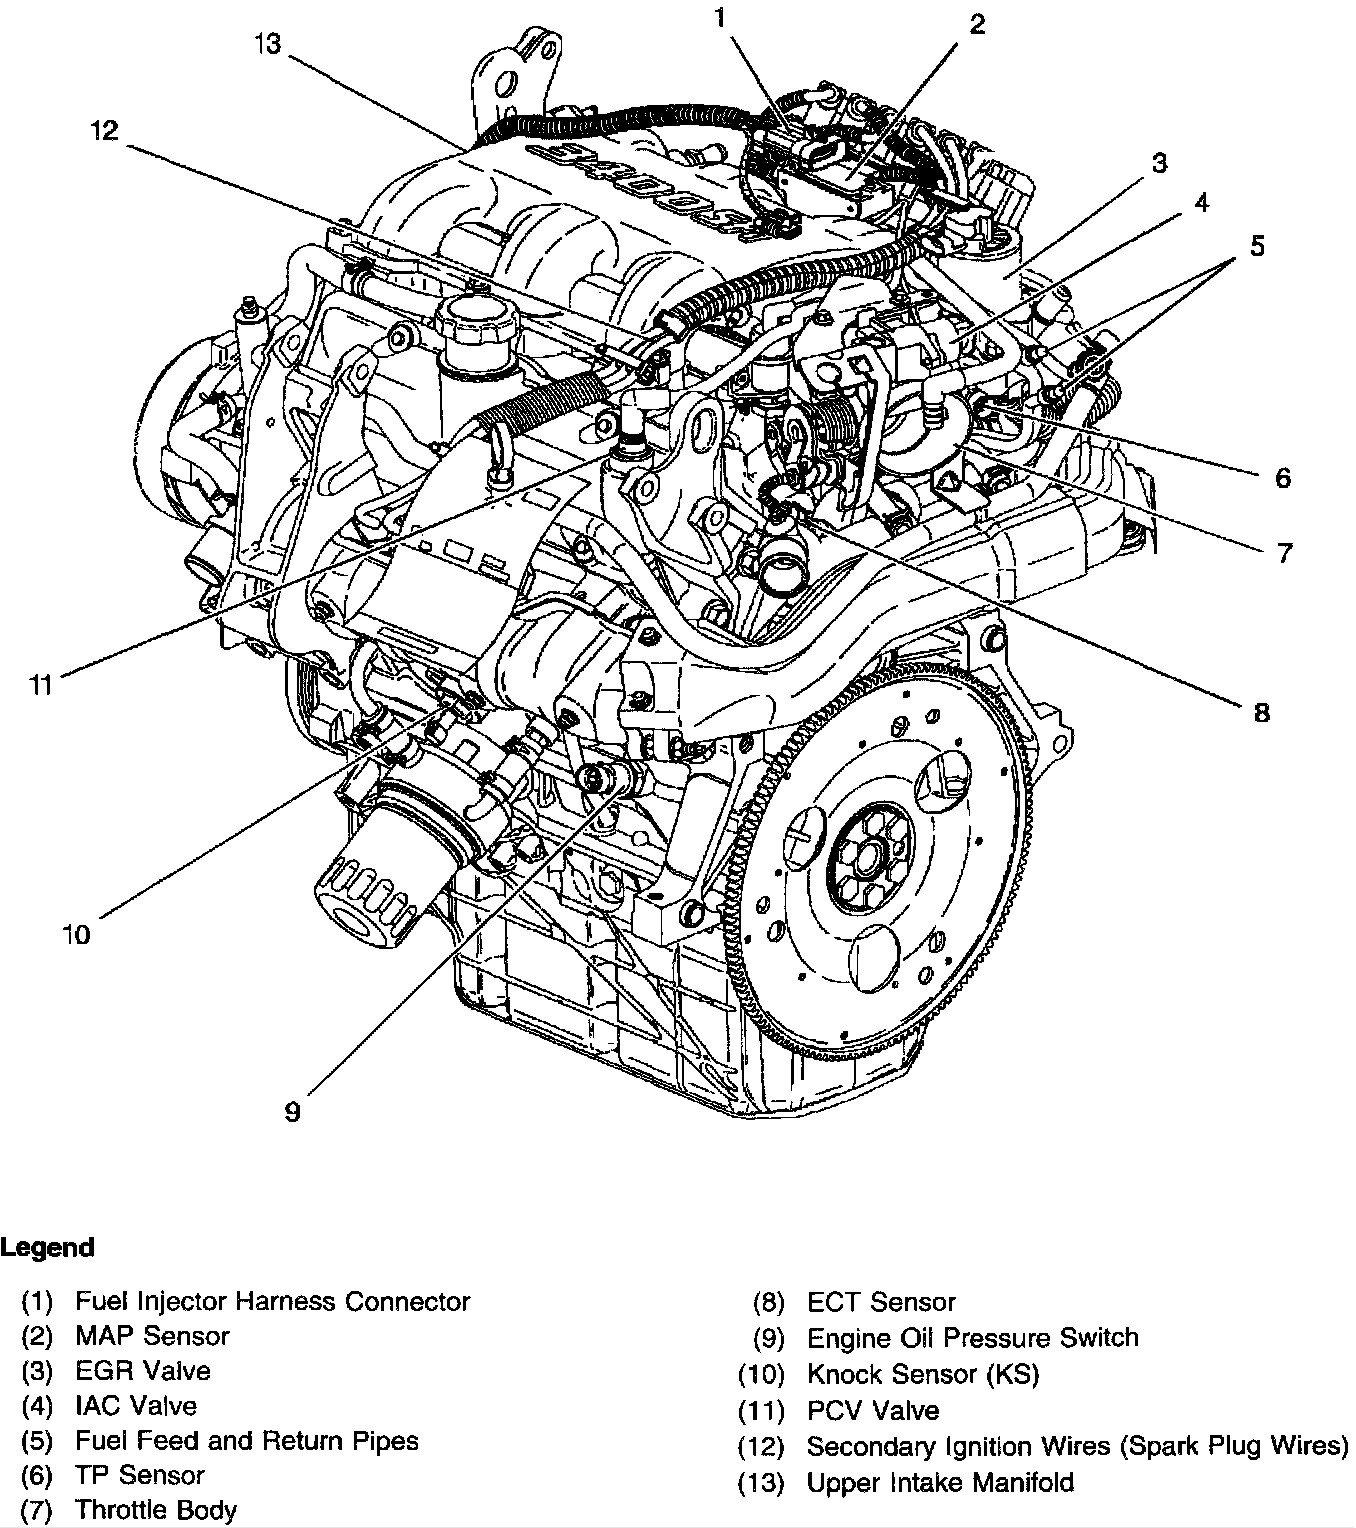 2003 Cadillac Cts Engine Diagram Wiring Library Egr Valve Wire Harness Camshaft Parts V6 Info Of